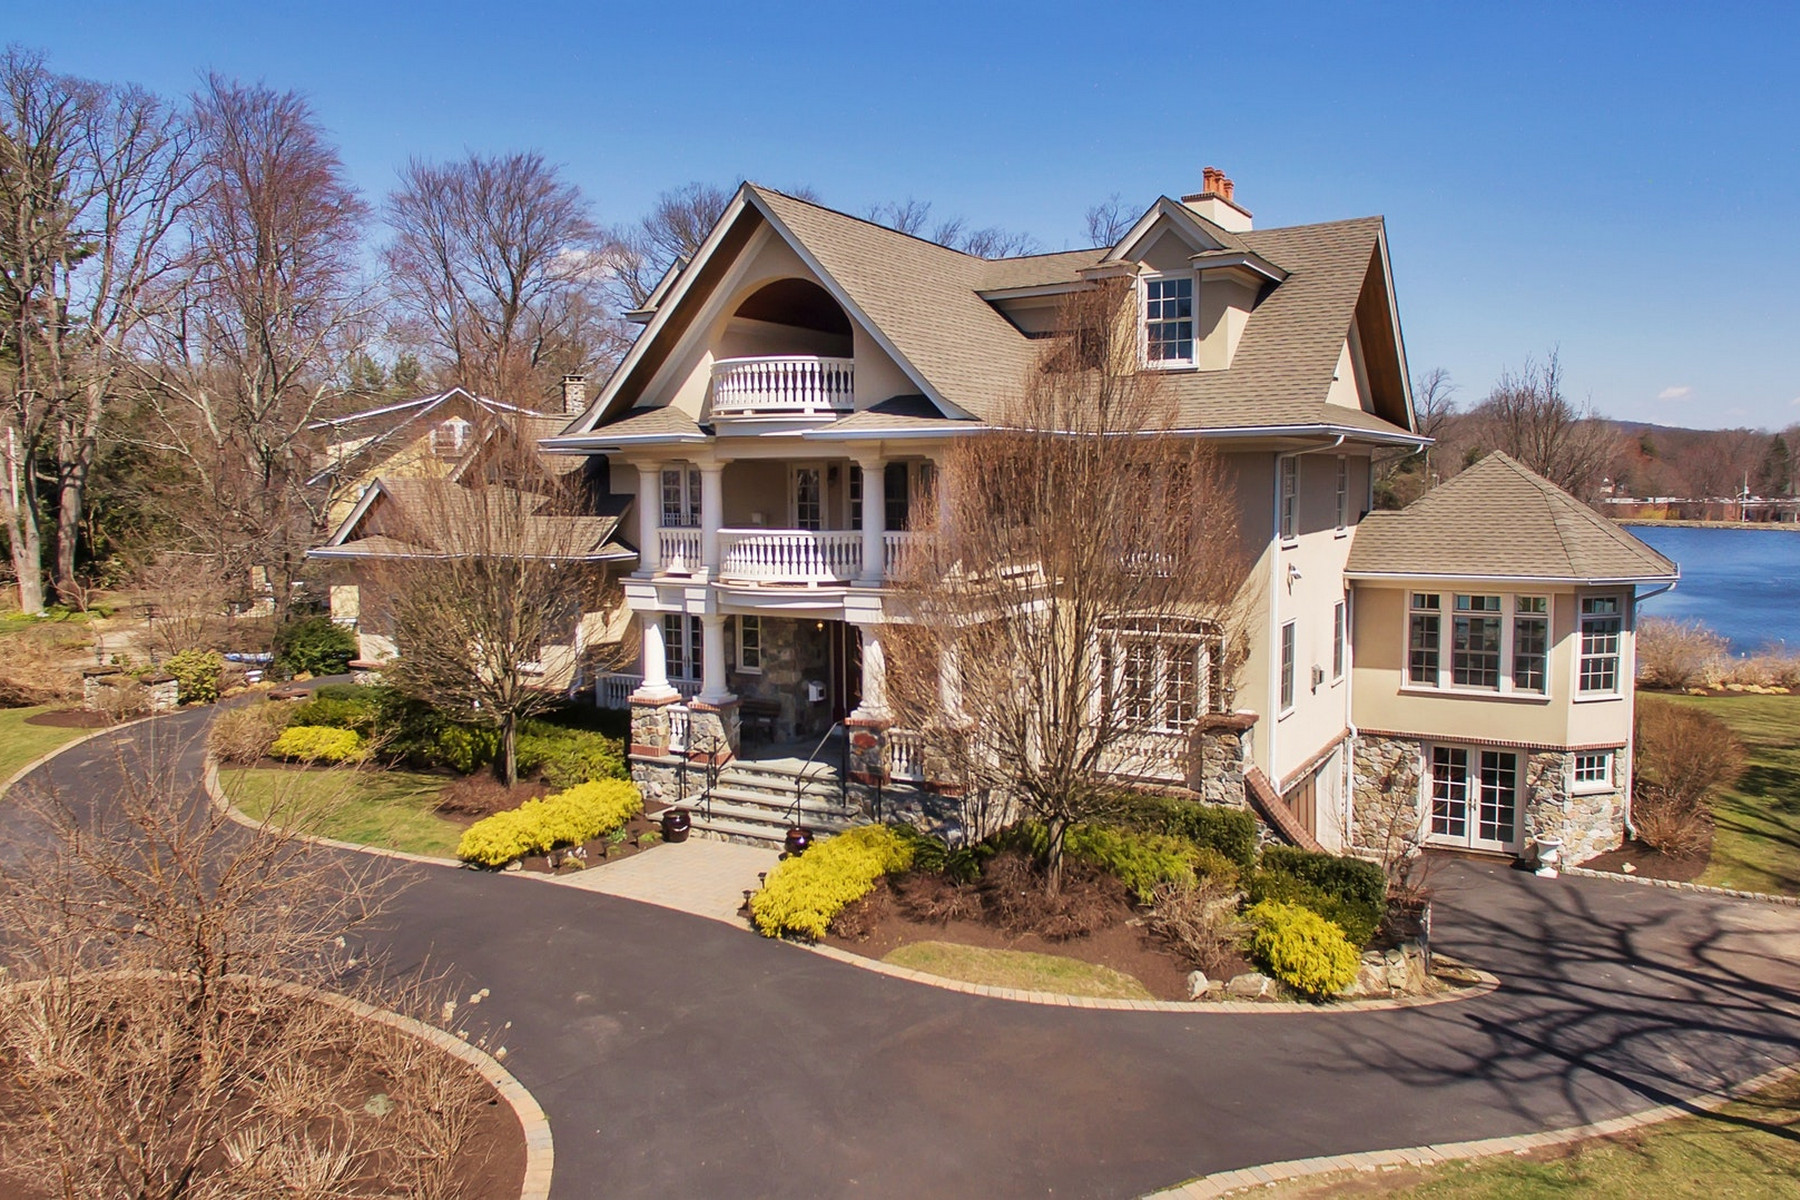 Single Family Homes for Sale at Luxury Lakefront Living 49 Briarcliff Road Mountain Lakes, New Jersey 07046 United States